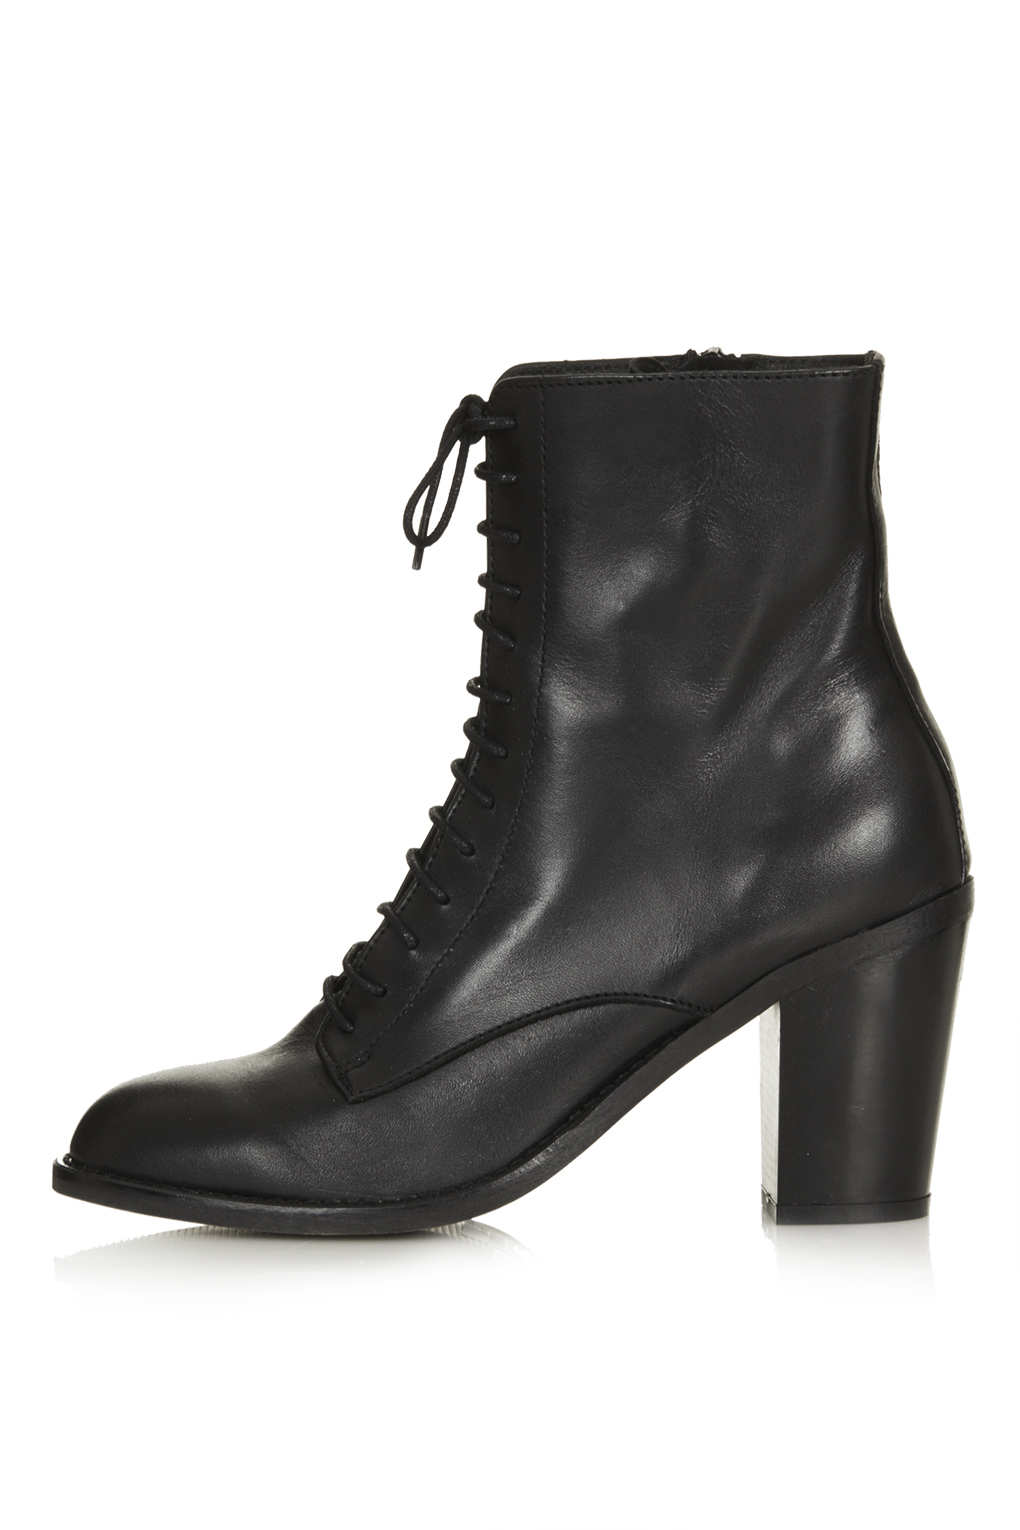 Topshop Abra Lace Up Witch Boots In Black - Lyst-3840